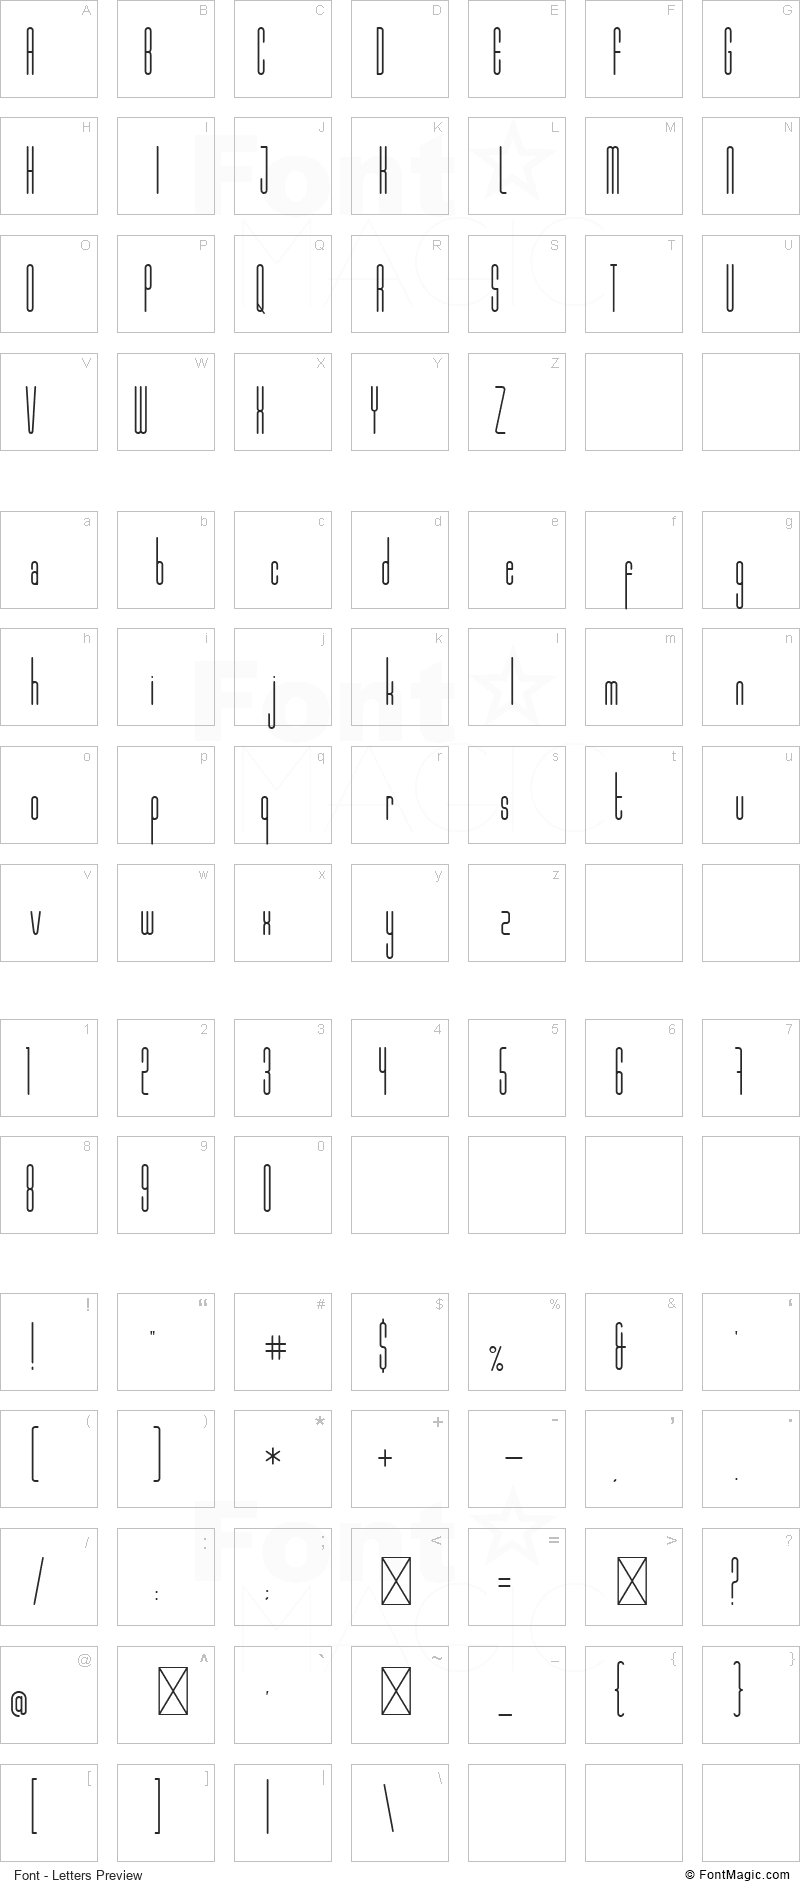 Marbellya Font - All Latters Preview Chart